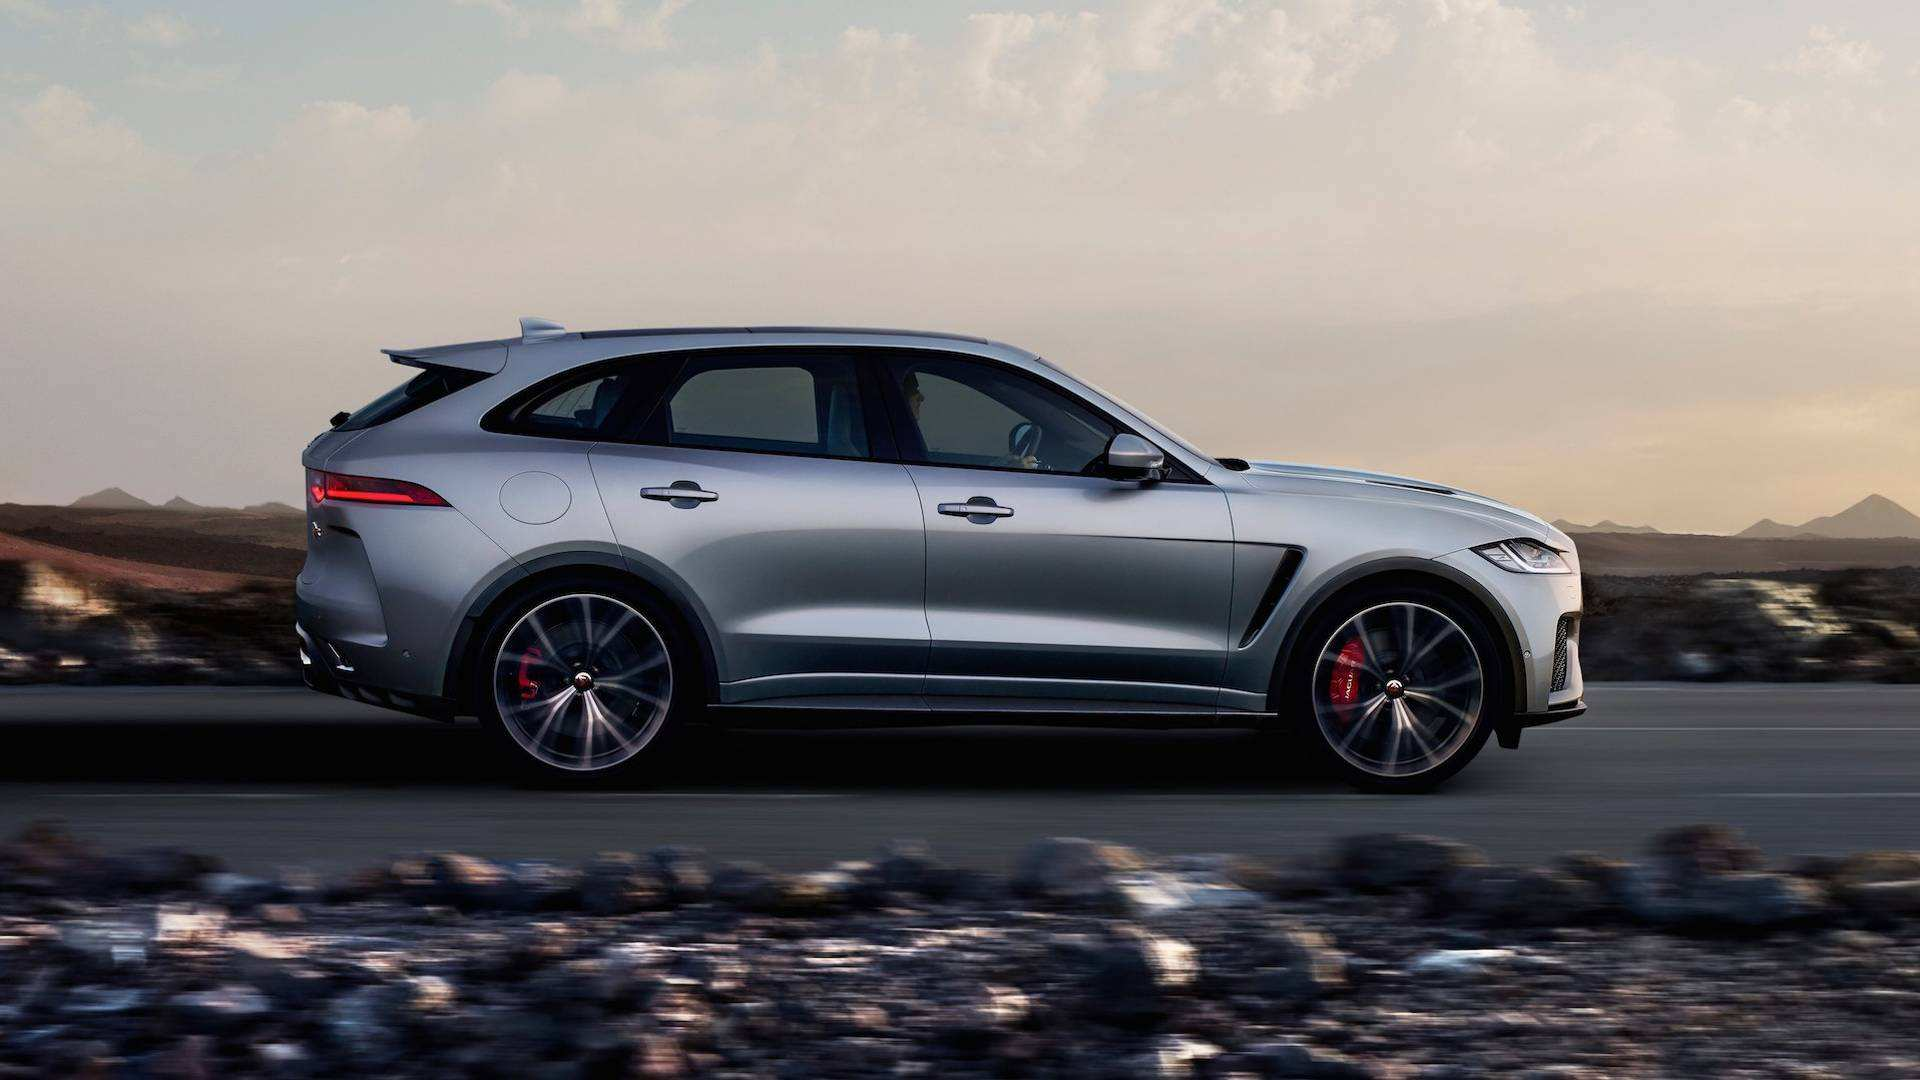 67 Great Jaguar F Pace New Model 2020 Wallpaper with Jaguar F Pace New Model 2020